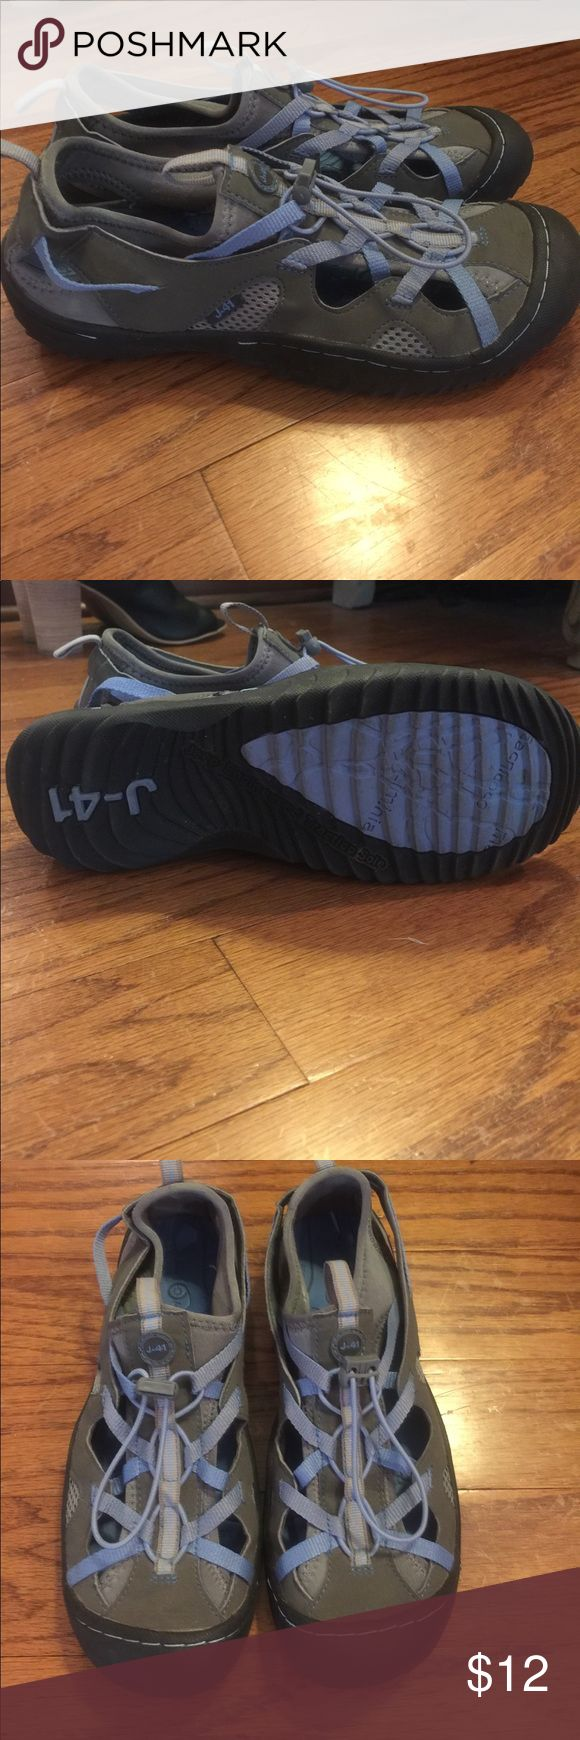 J-41 casual shoes Sz 7.5 These shoes have been worn 2-3 times for a short period of time. Super comfortable and perfect for a hike. Very sturdy. True to size j 41 Shoes Athletic Shoes